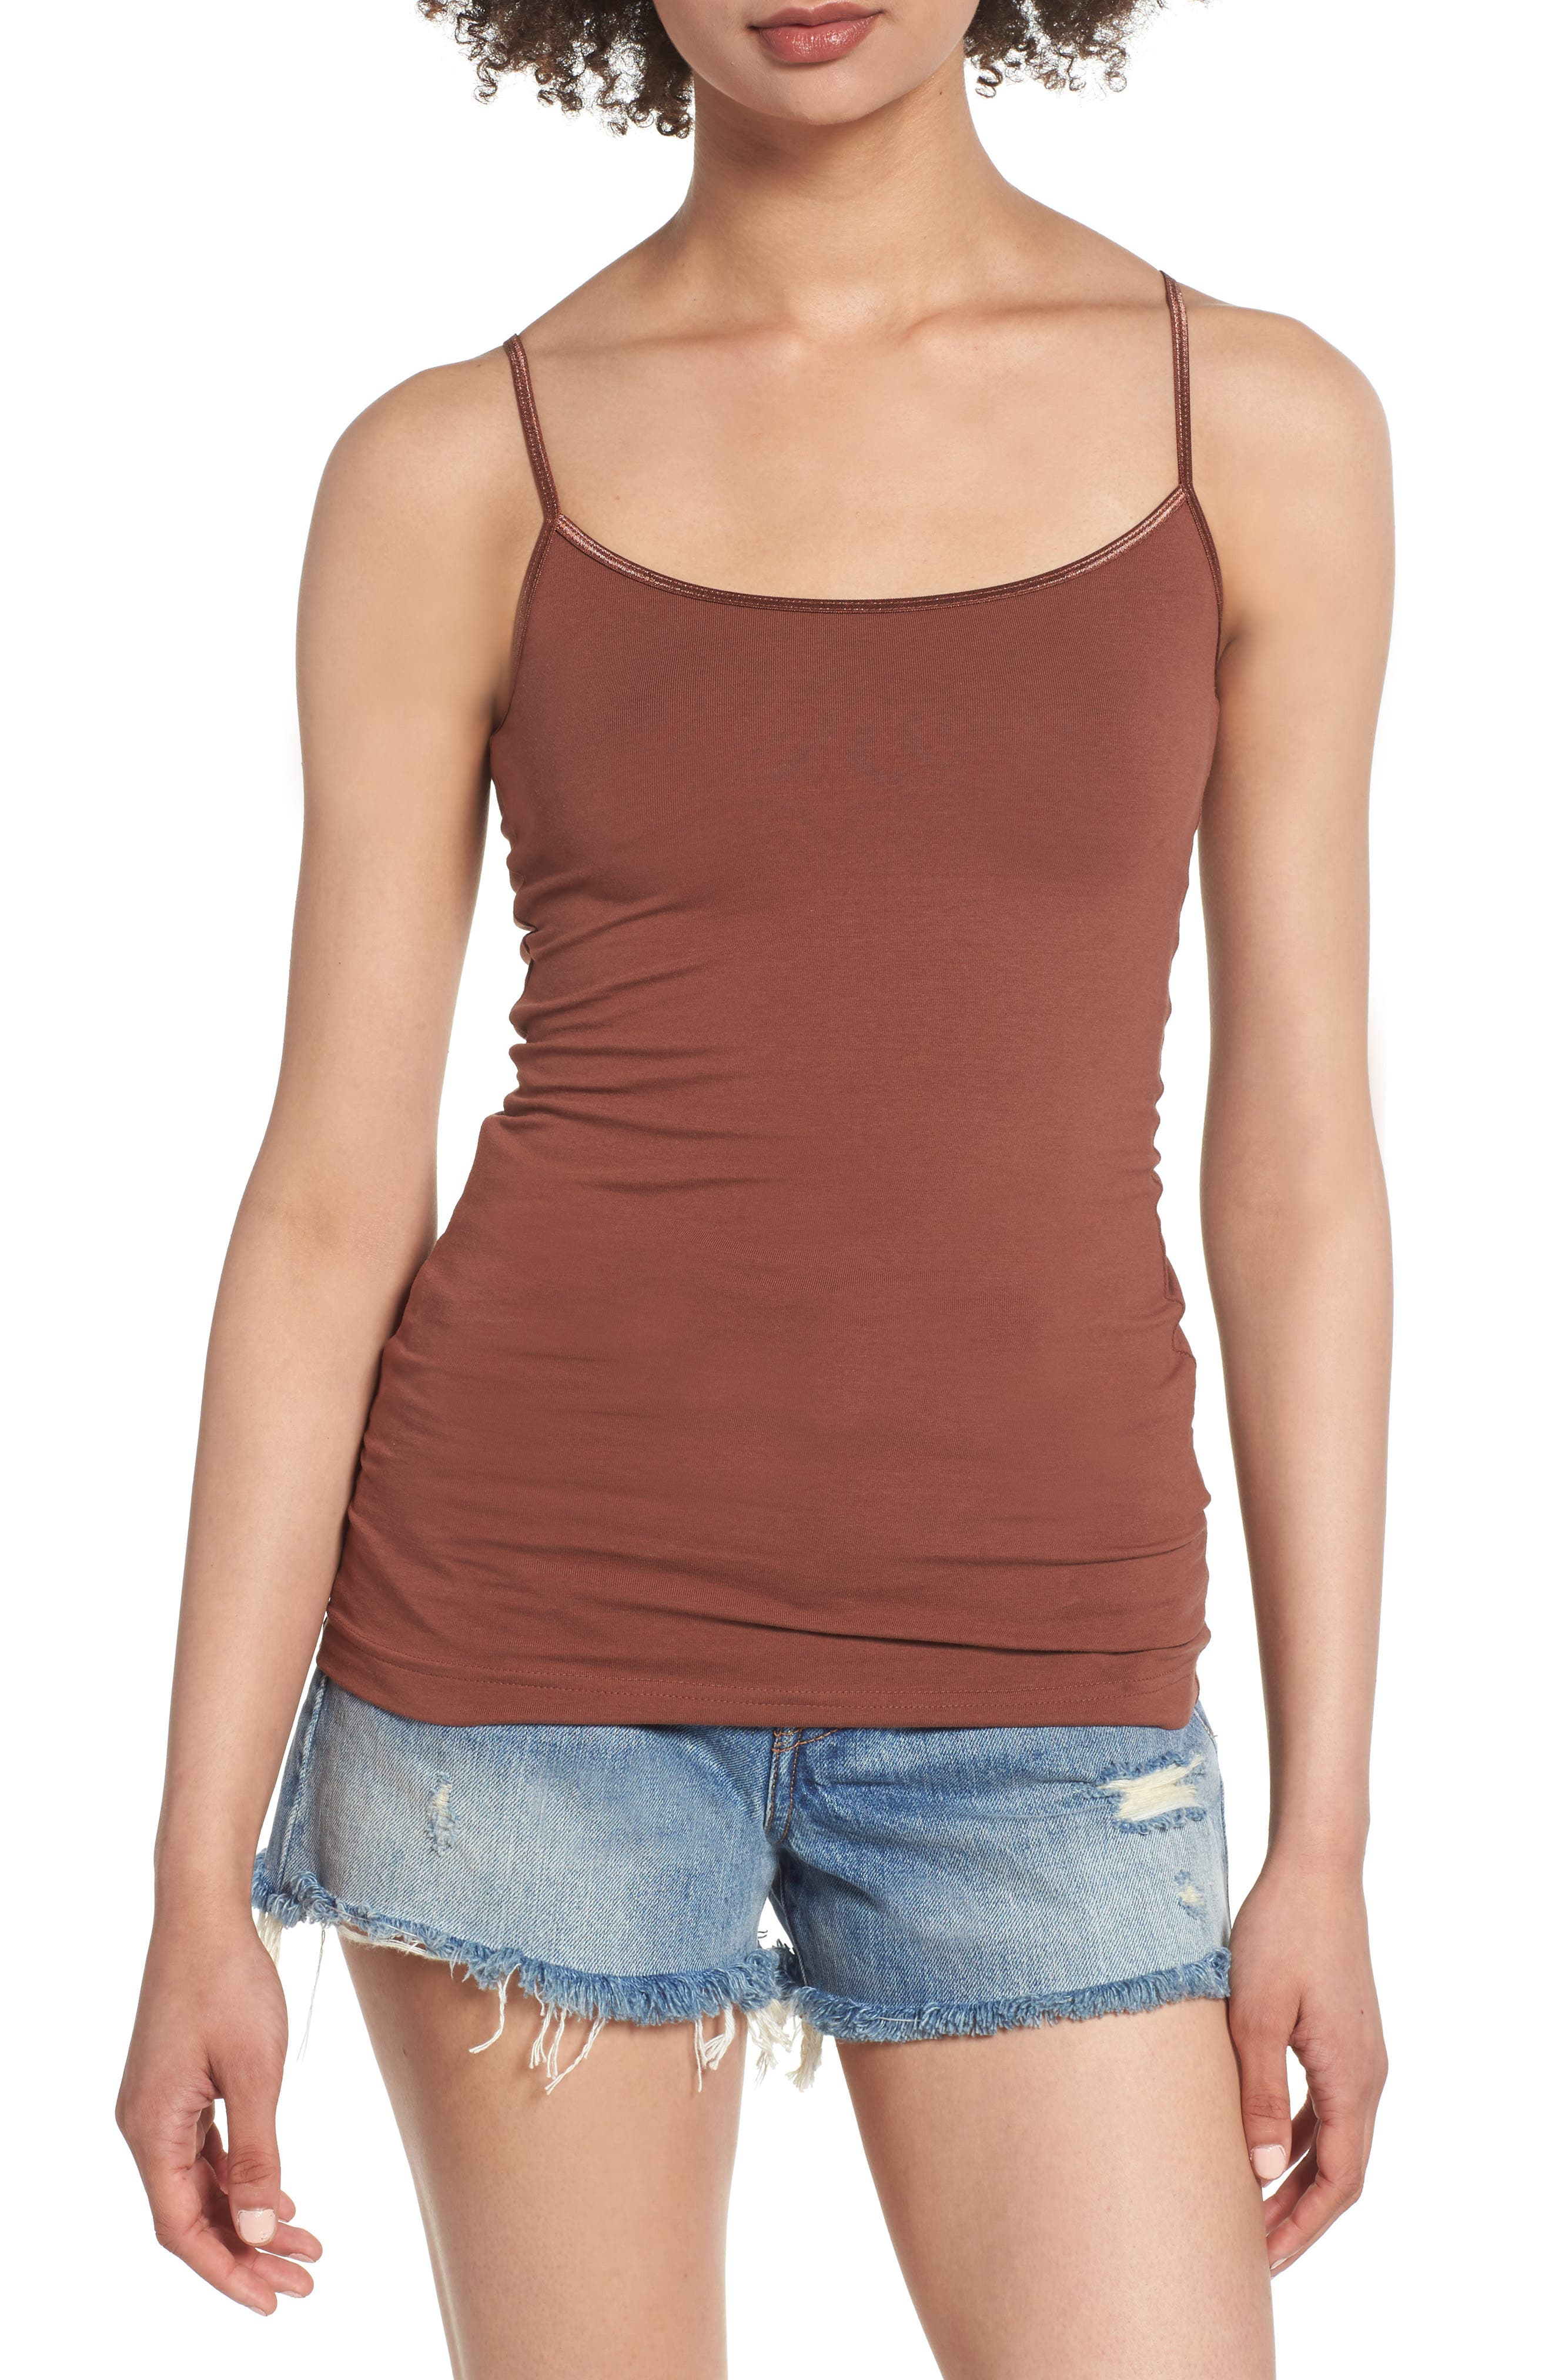 BP., Stretch Camisole, Main thumbnail 1, color, BROWN MINK